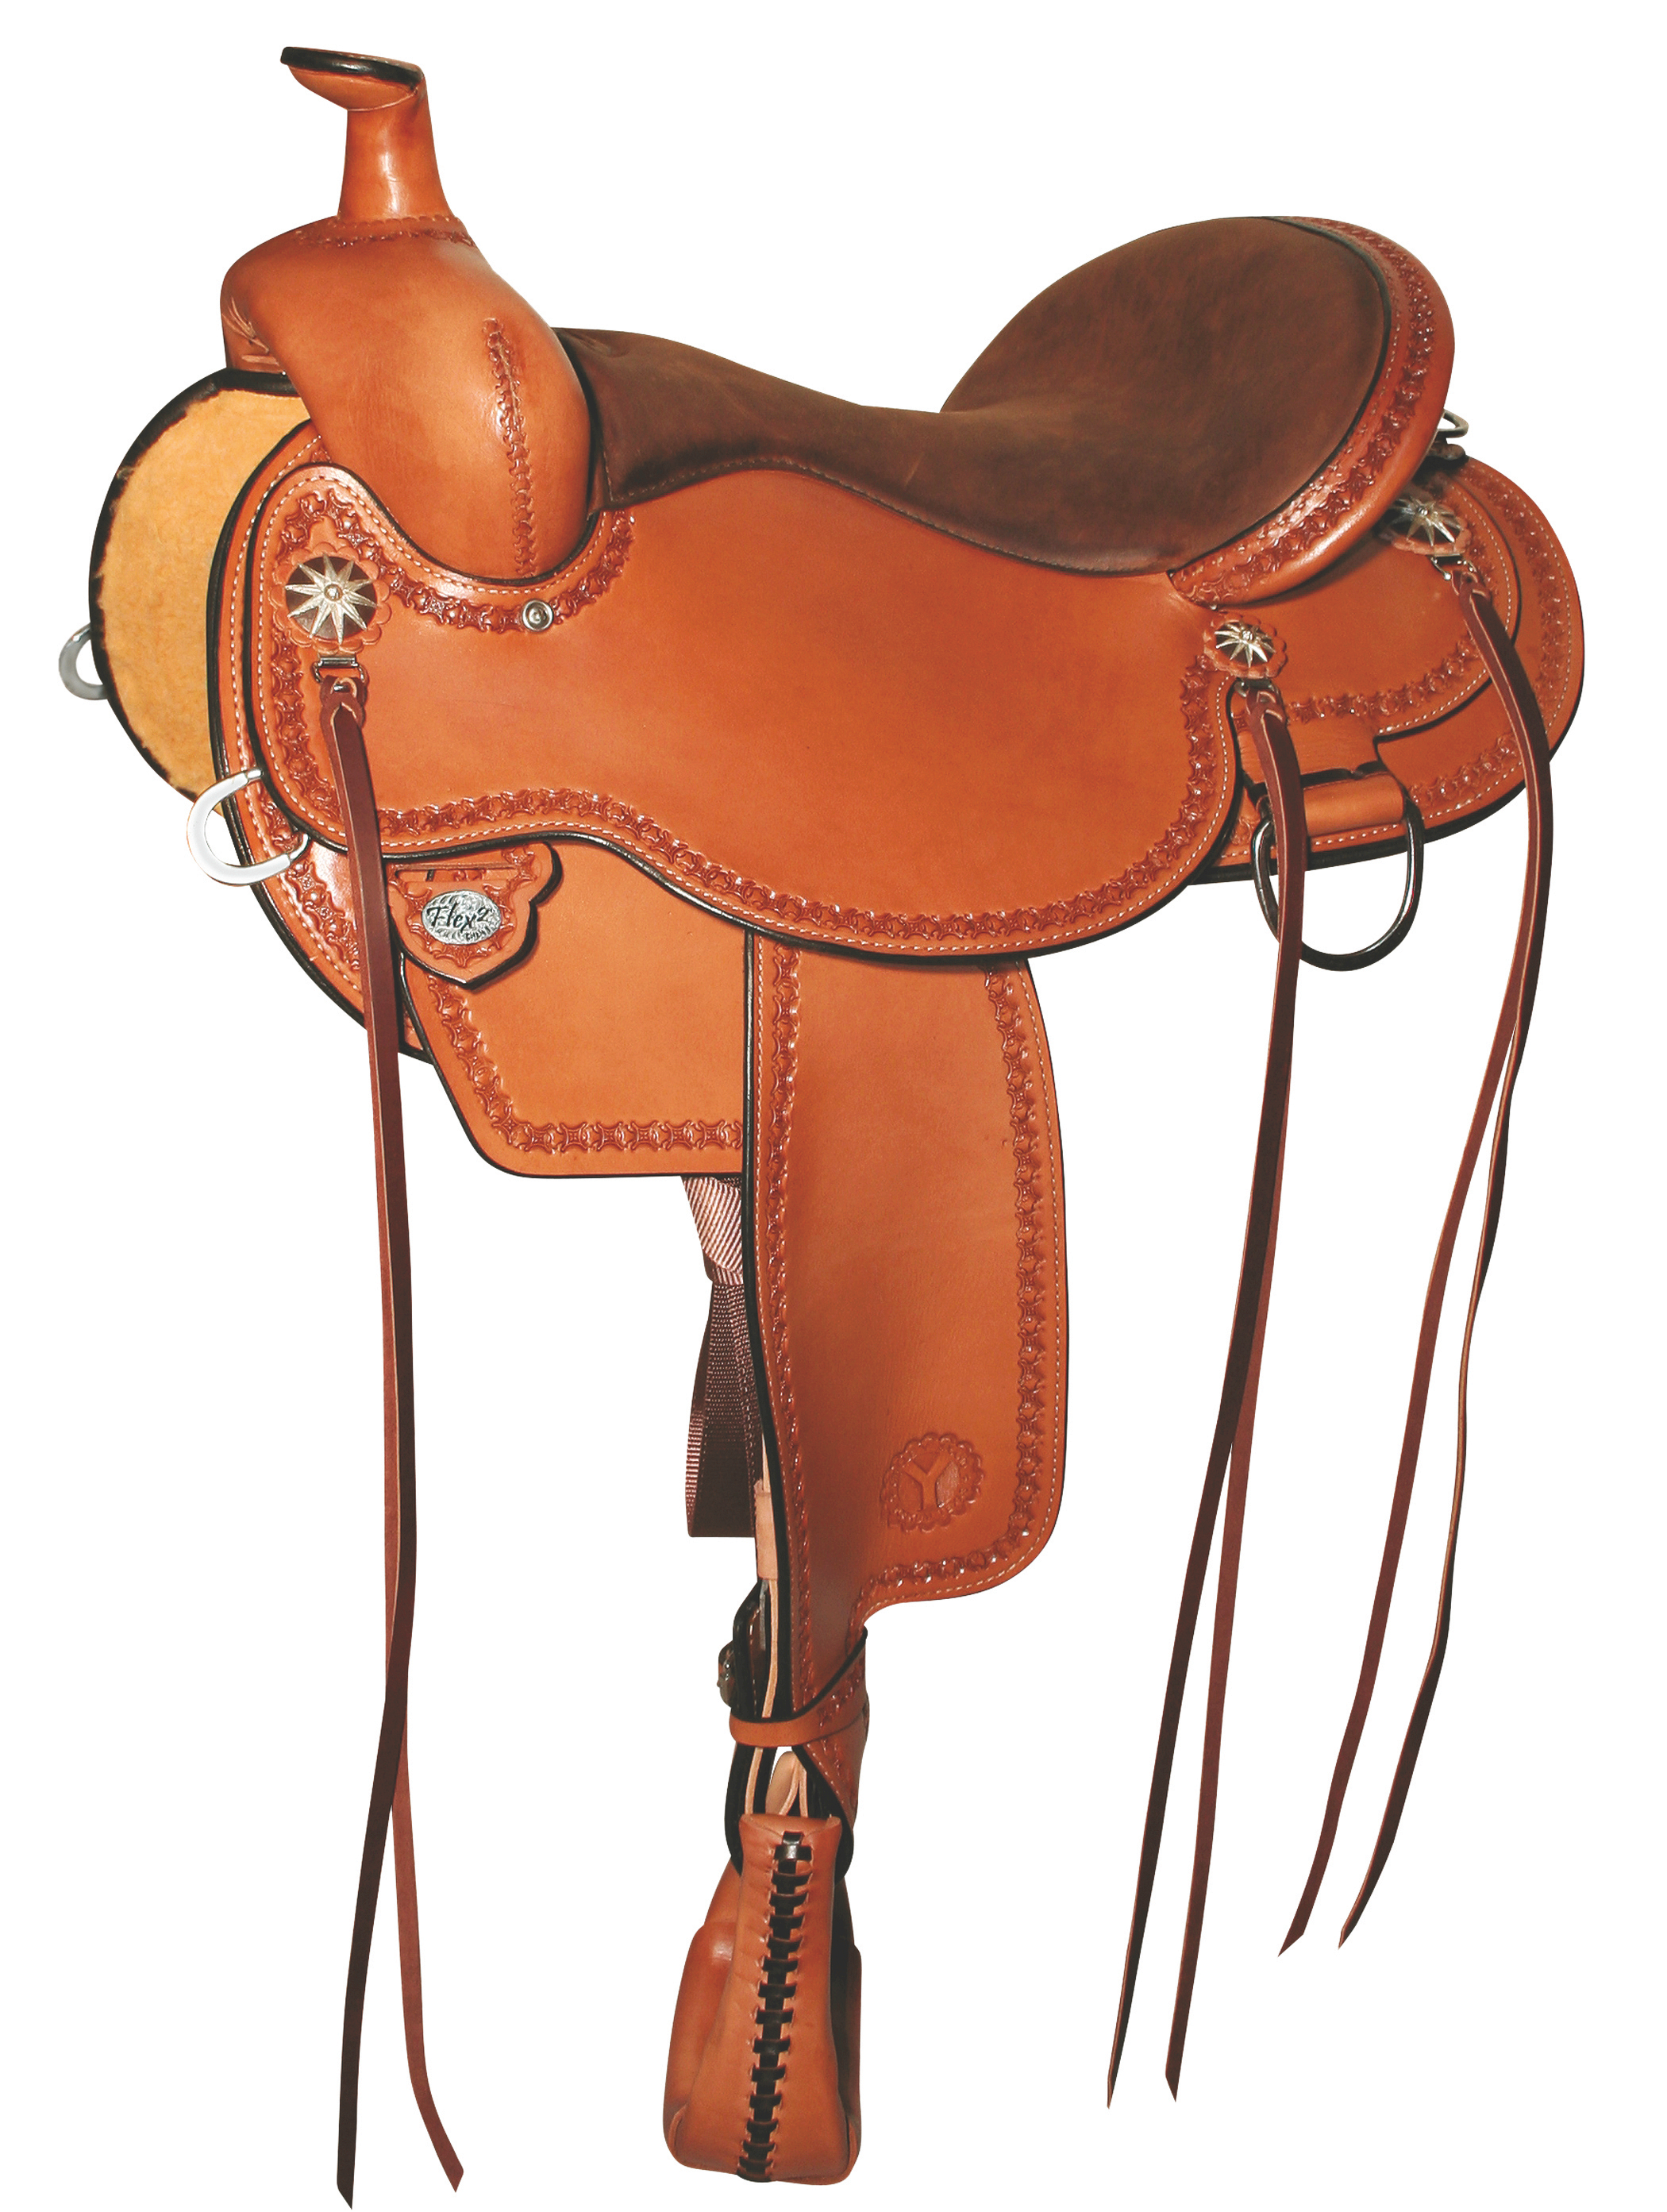 Y Birdseye Flex2 Trail Saddle.